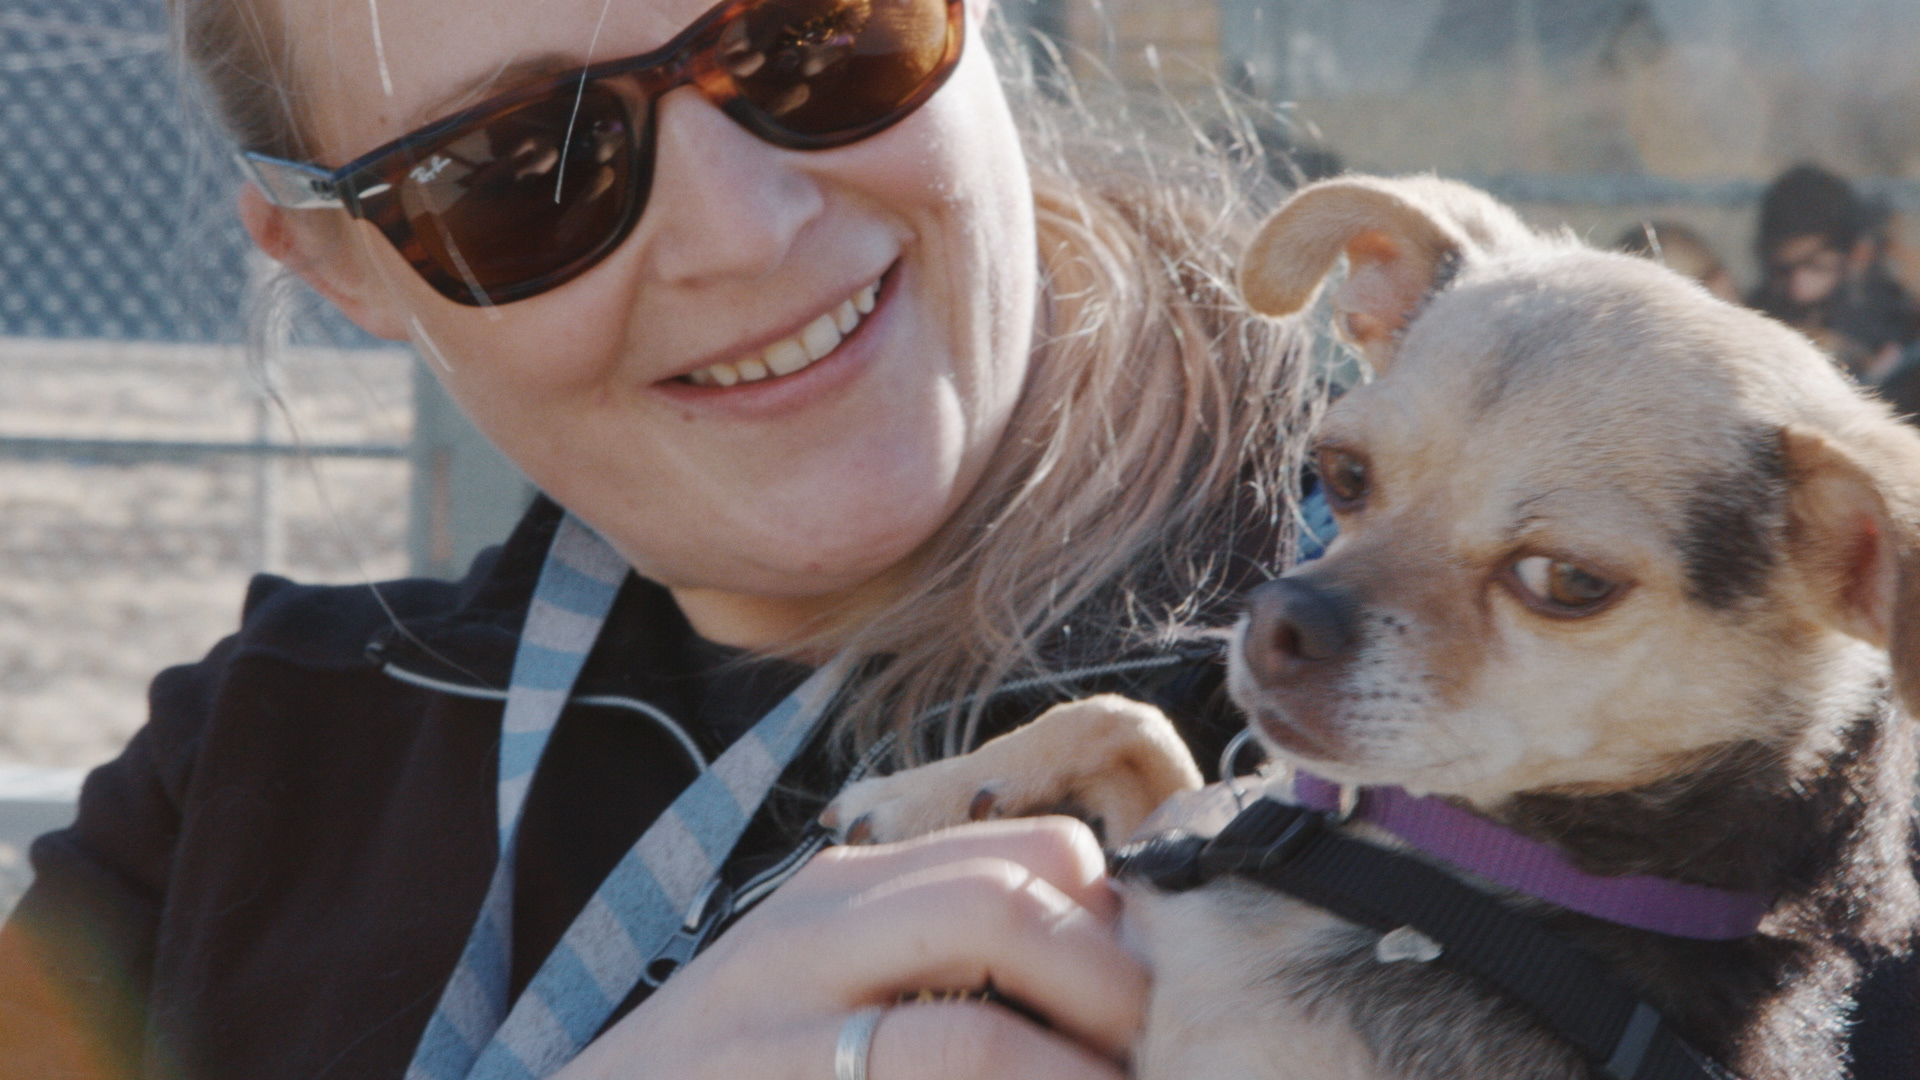 - We will be able to provide the specialized care needed for senior, shy, and medically or behaviorally challenged animals.